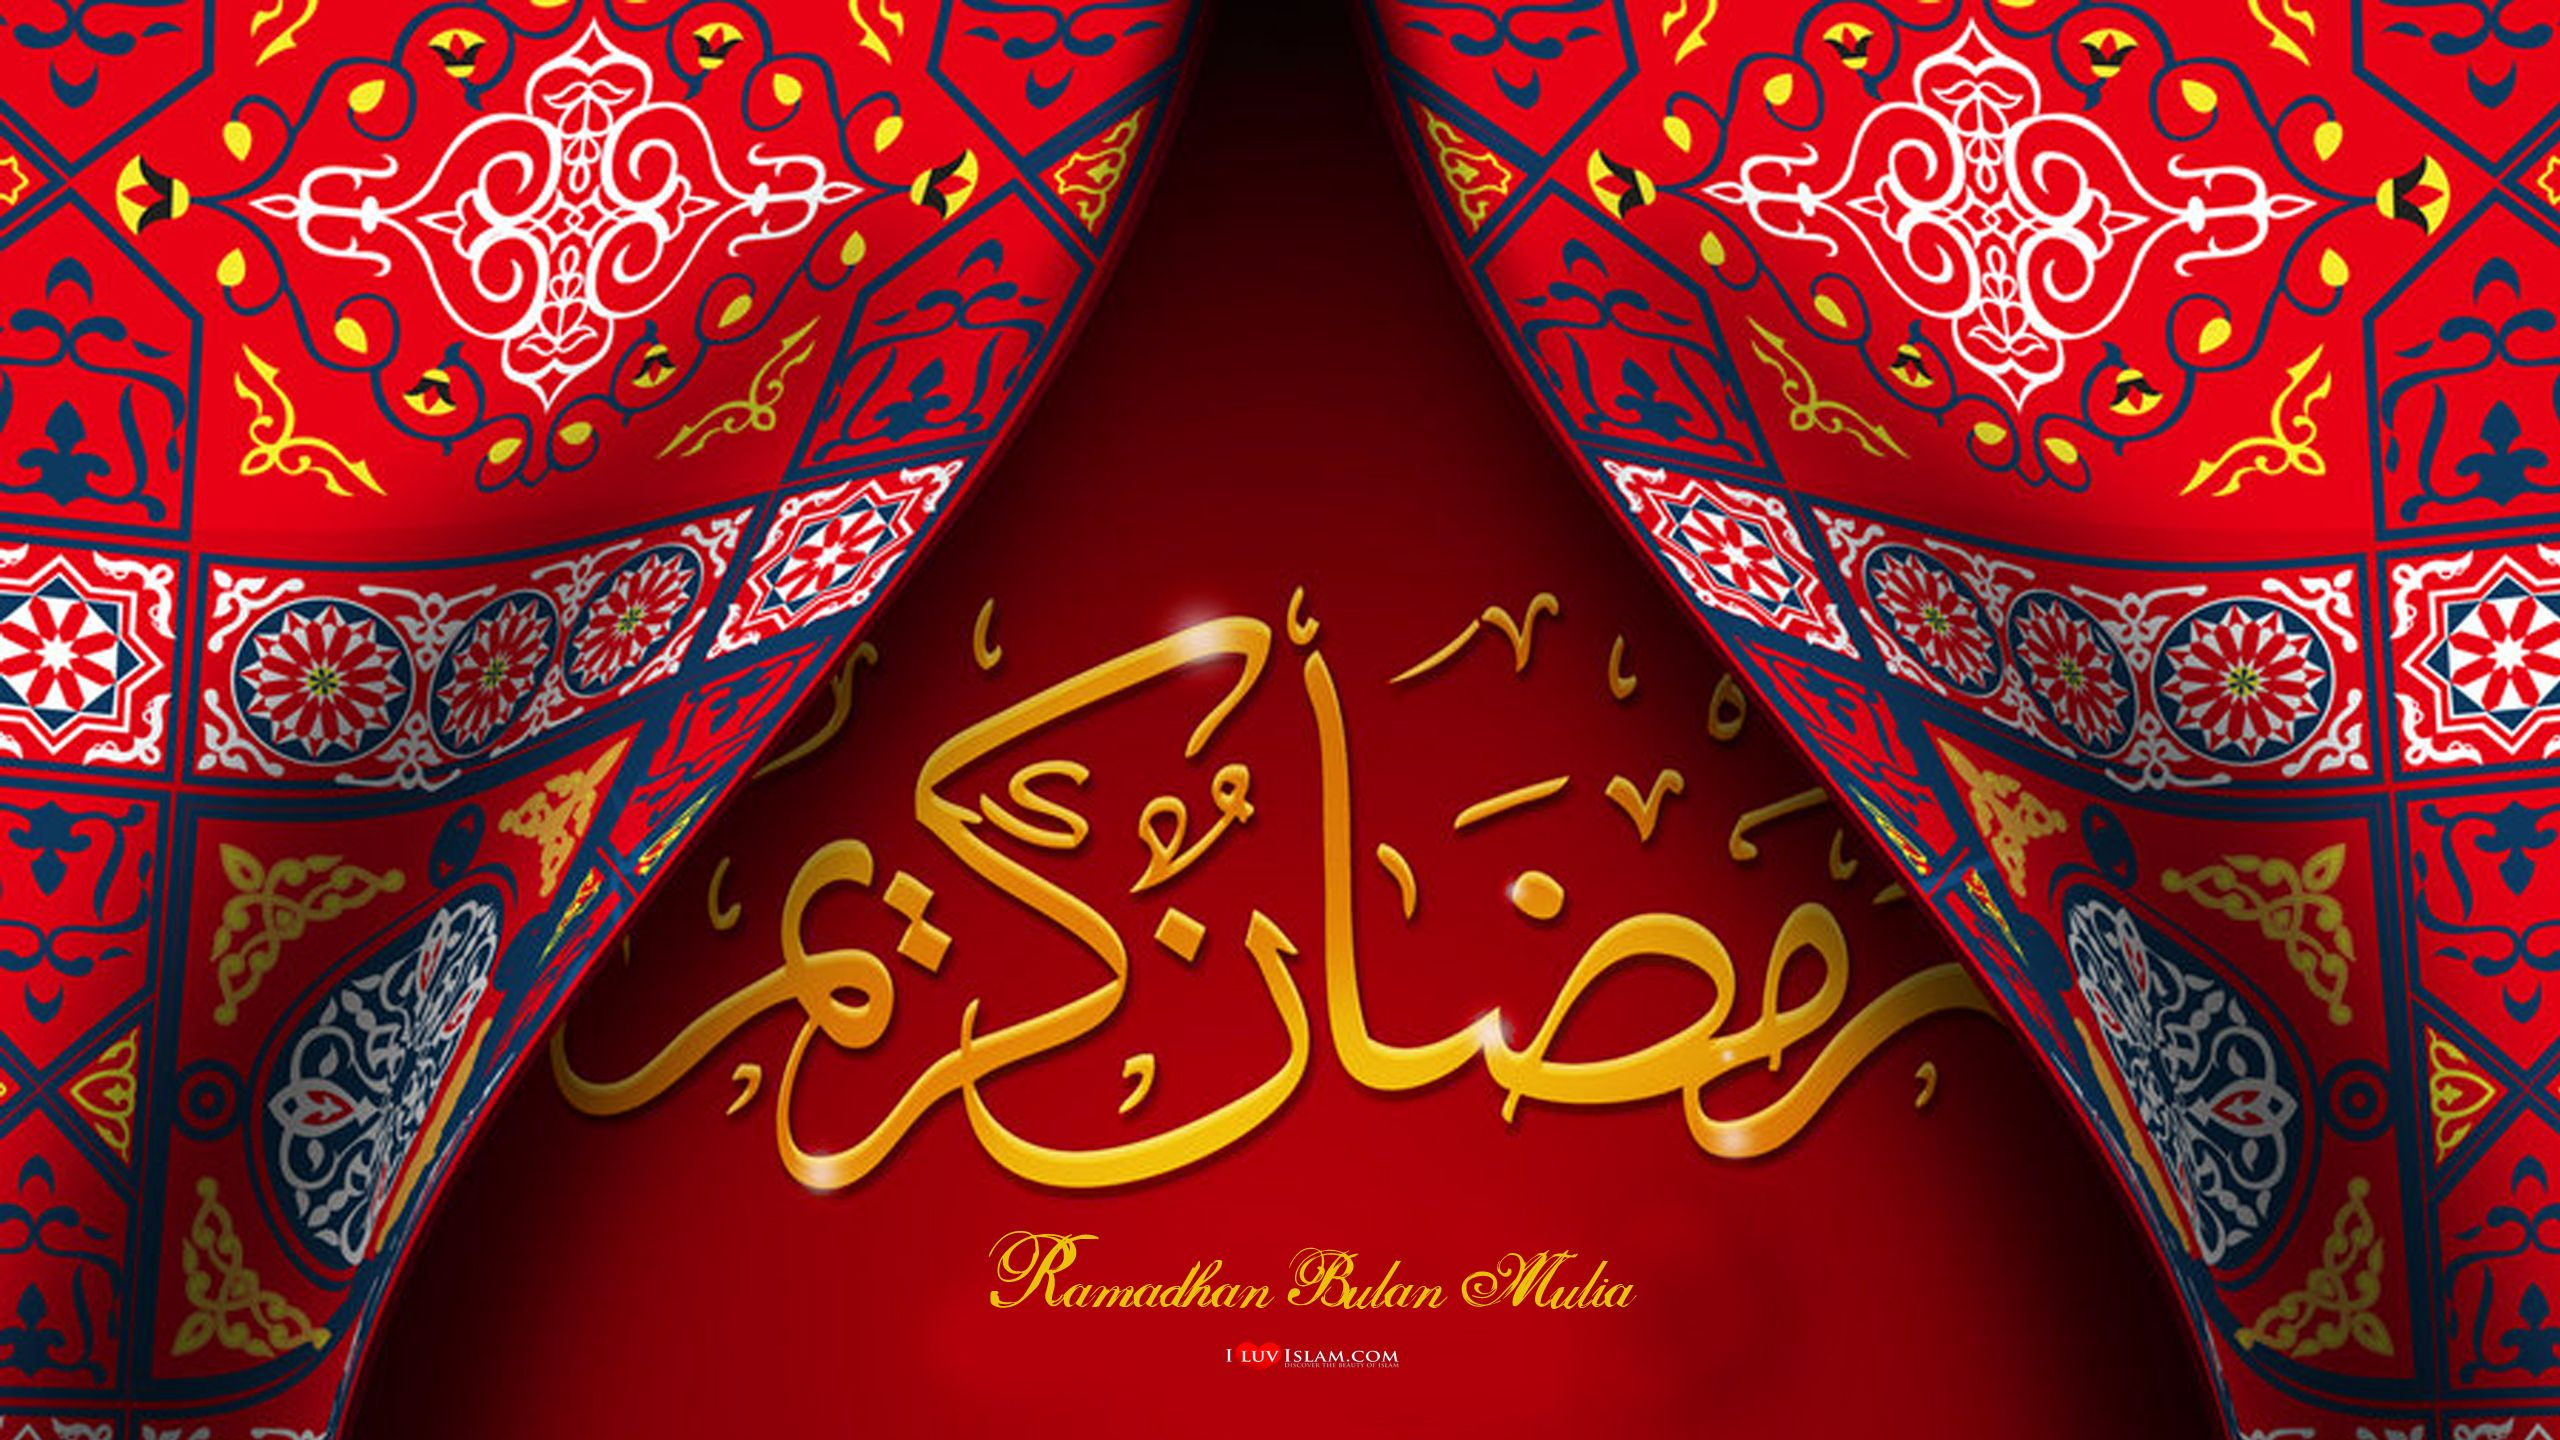 Wallpaper 16 With Images Ramadan Wallpaper Hd Ramadan Images